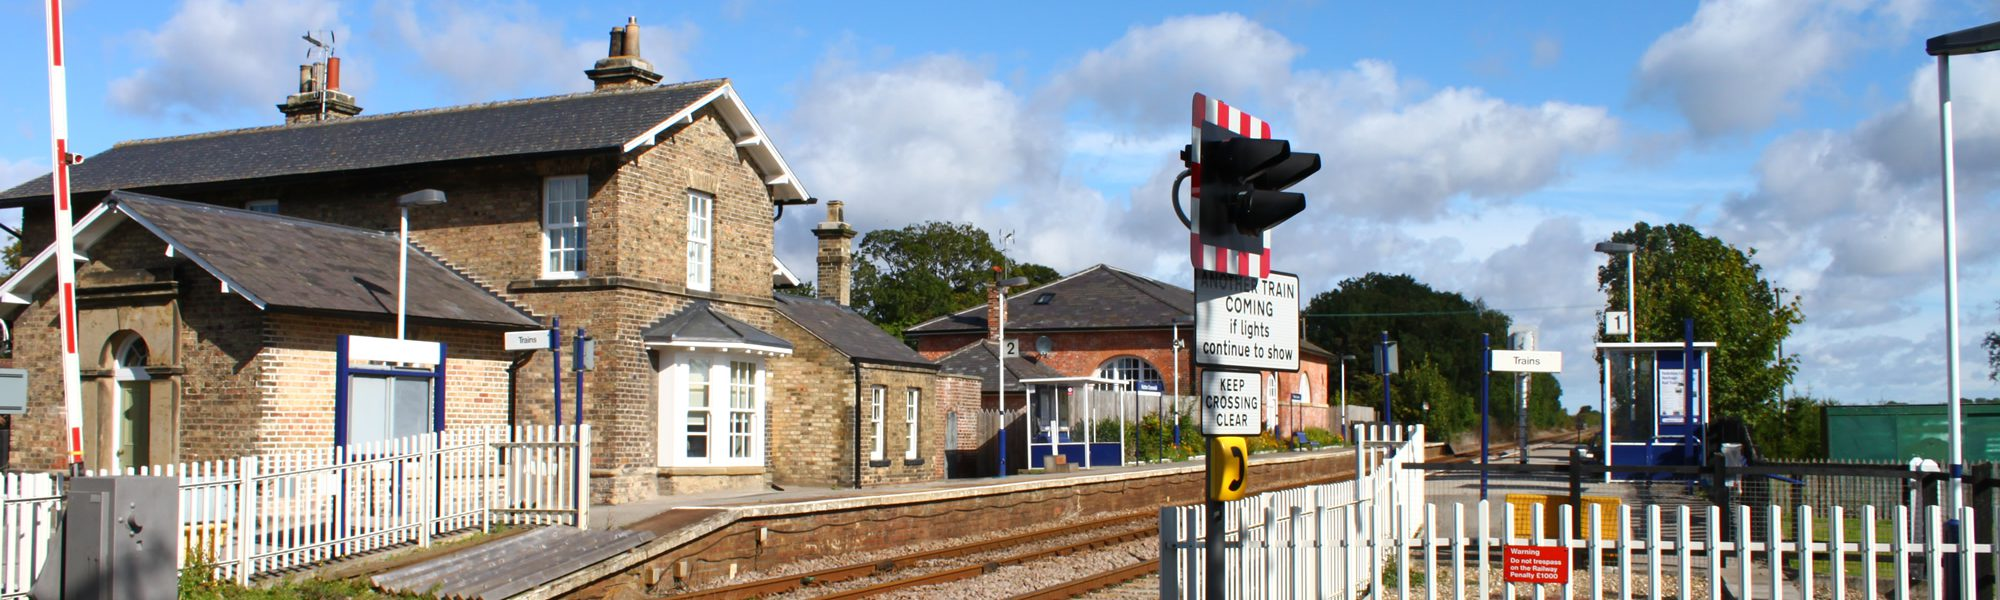 Hutton Cranswick Train Station